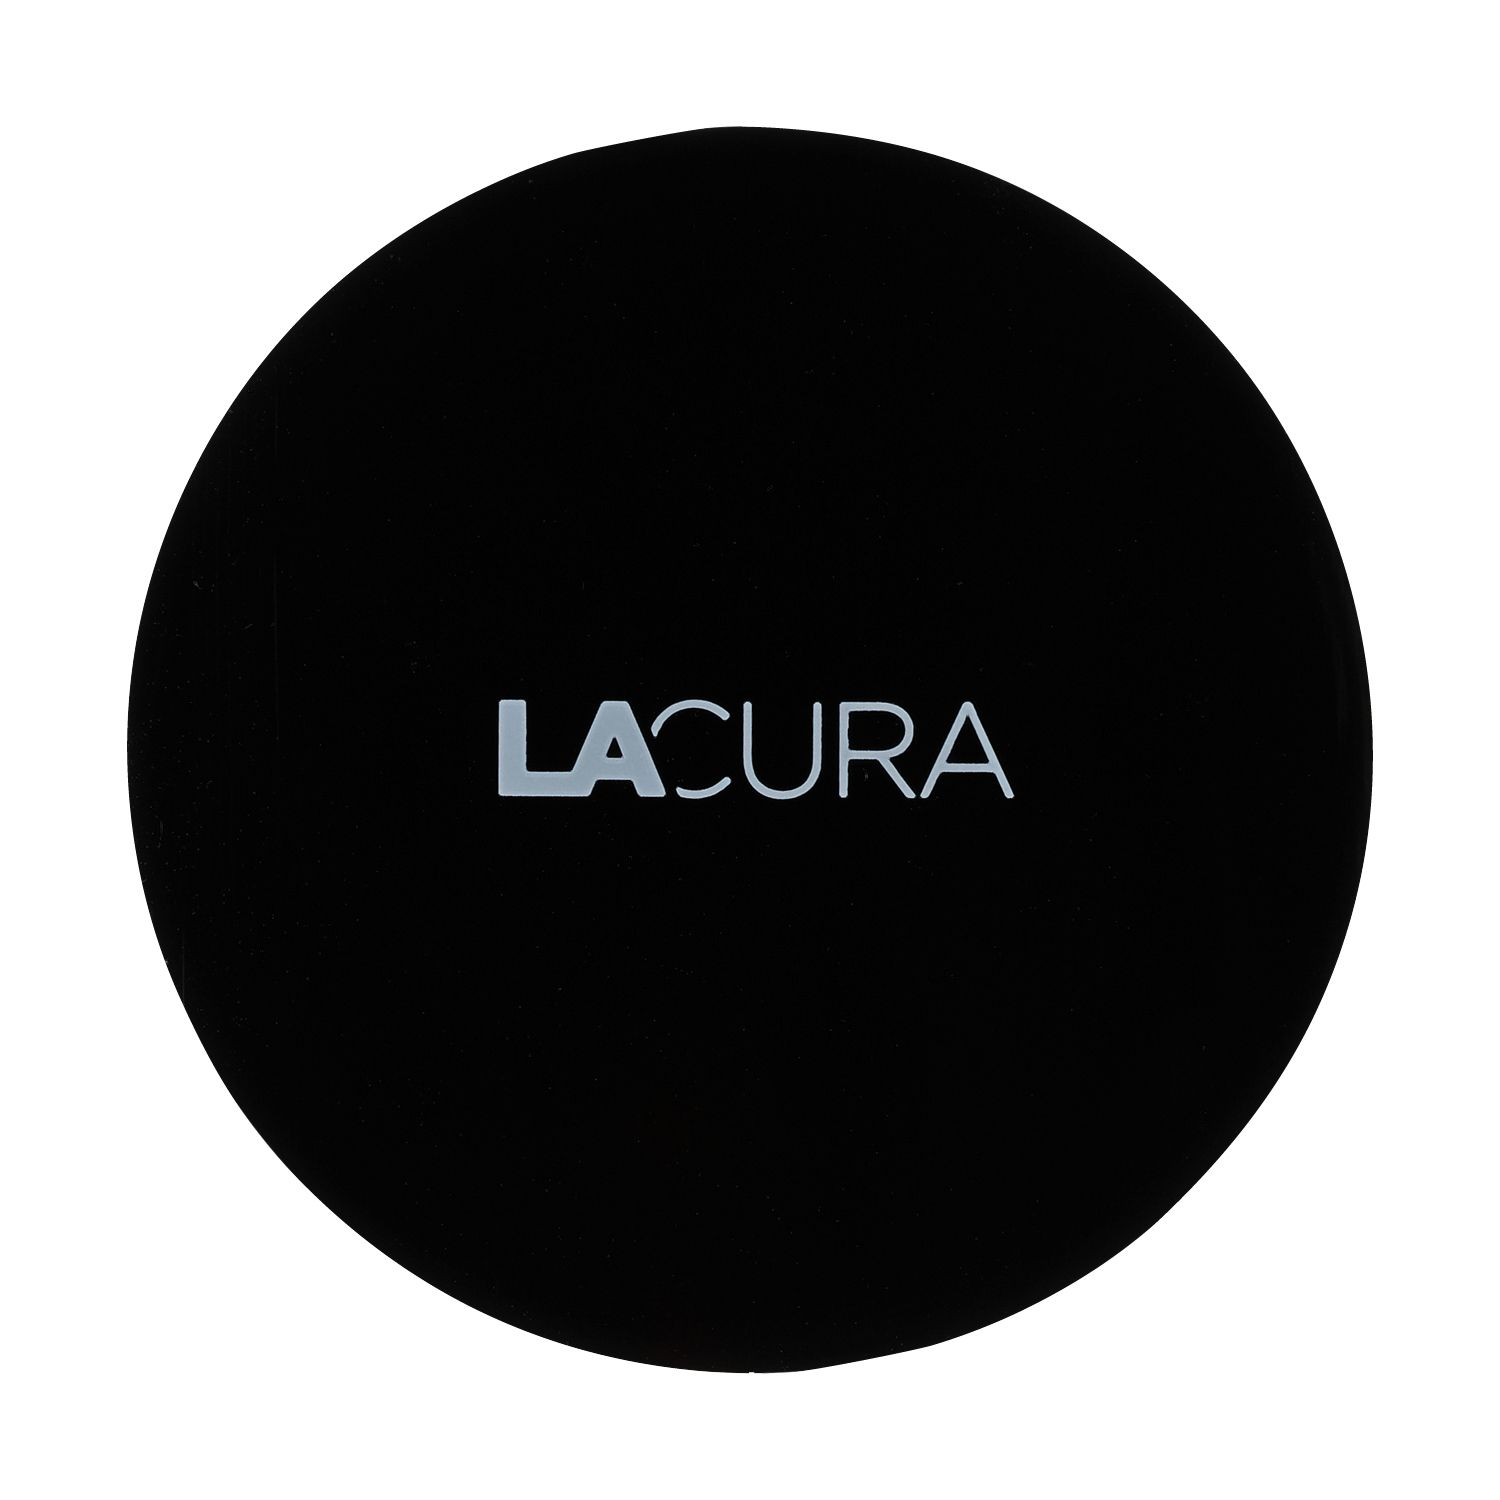 LACURA Powder 10g